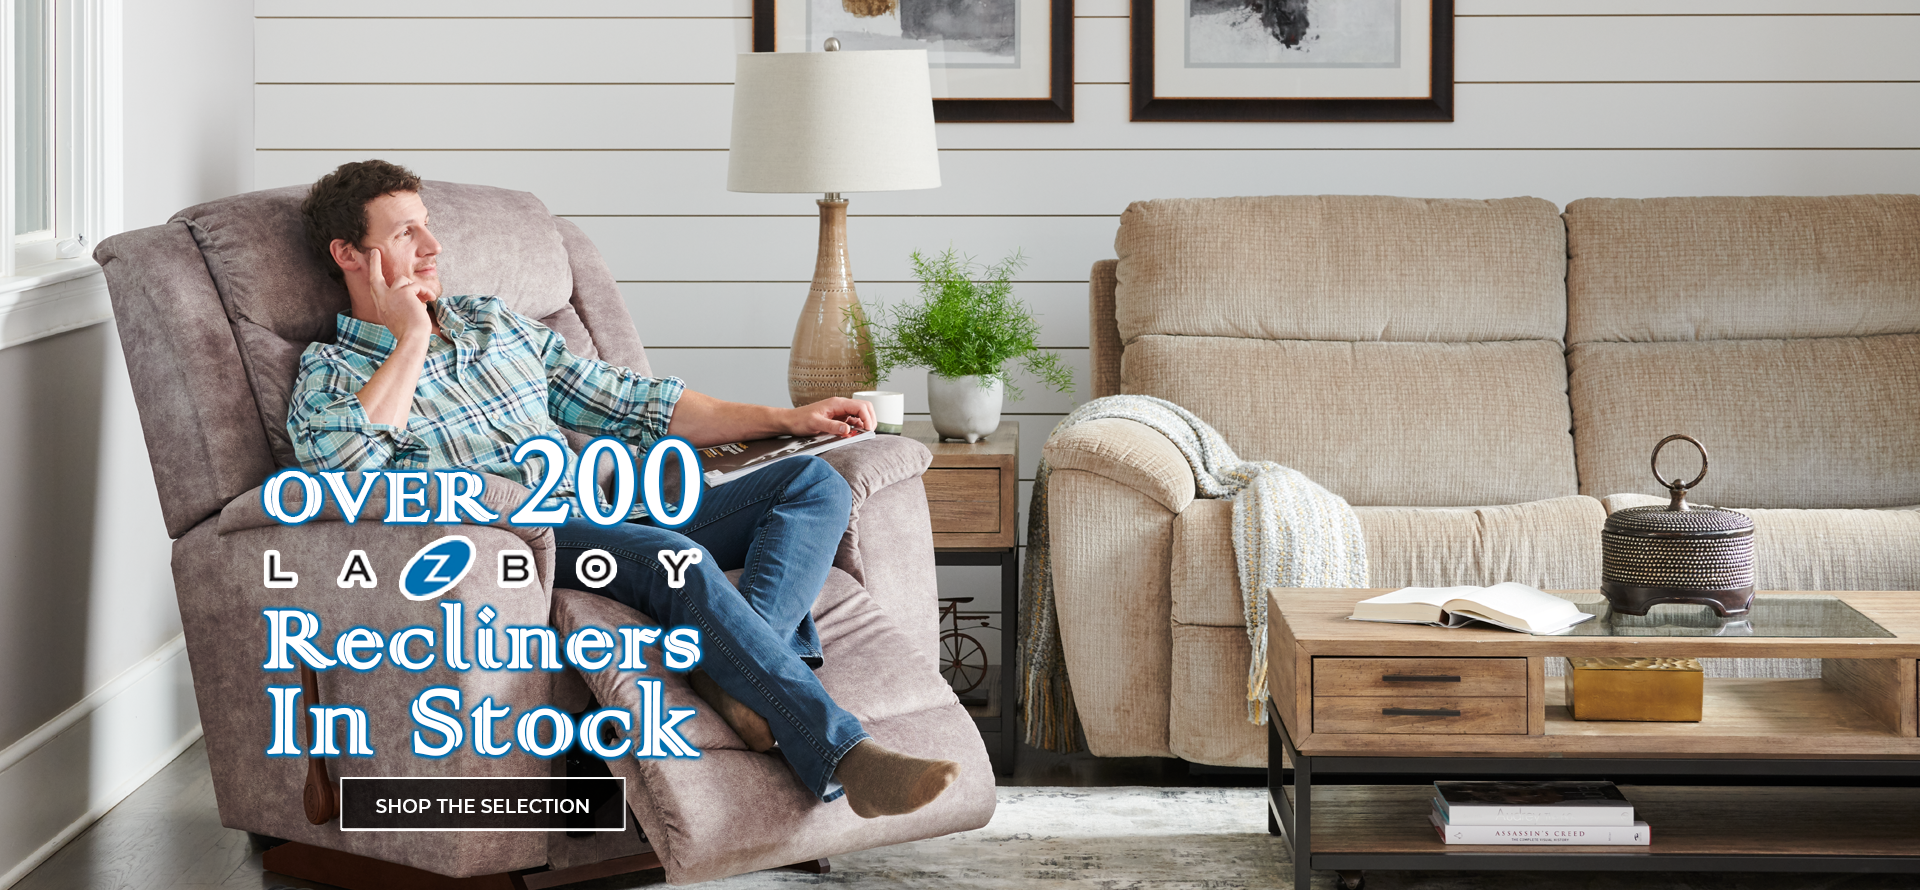 Over 200 La-Z-Boy Recliners In Stock. Click to shop the selection.